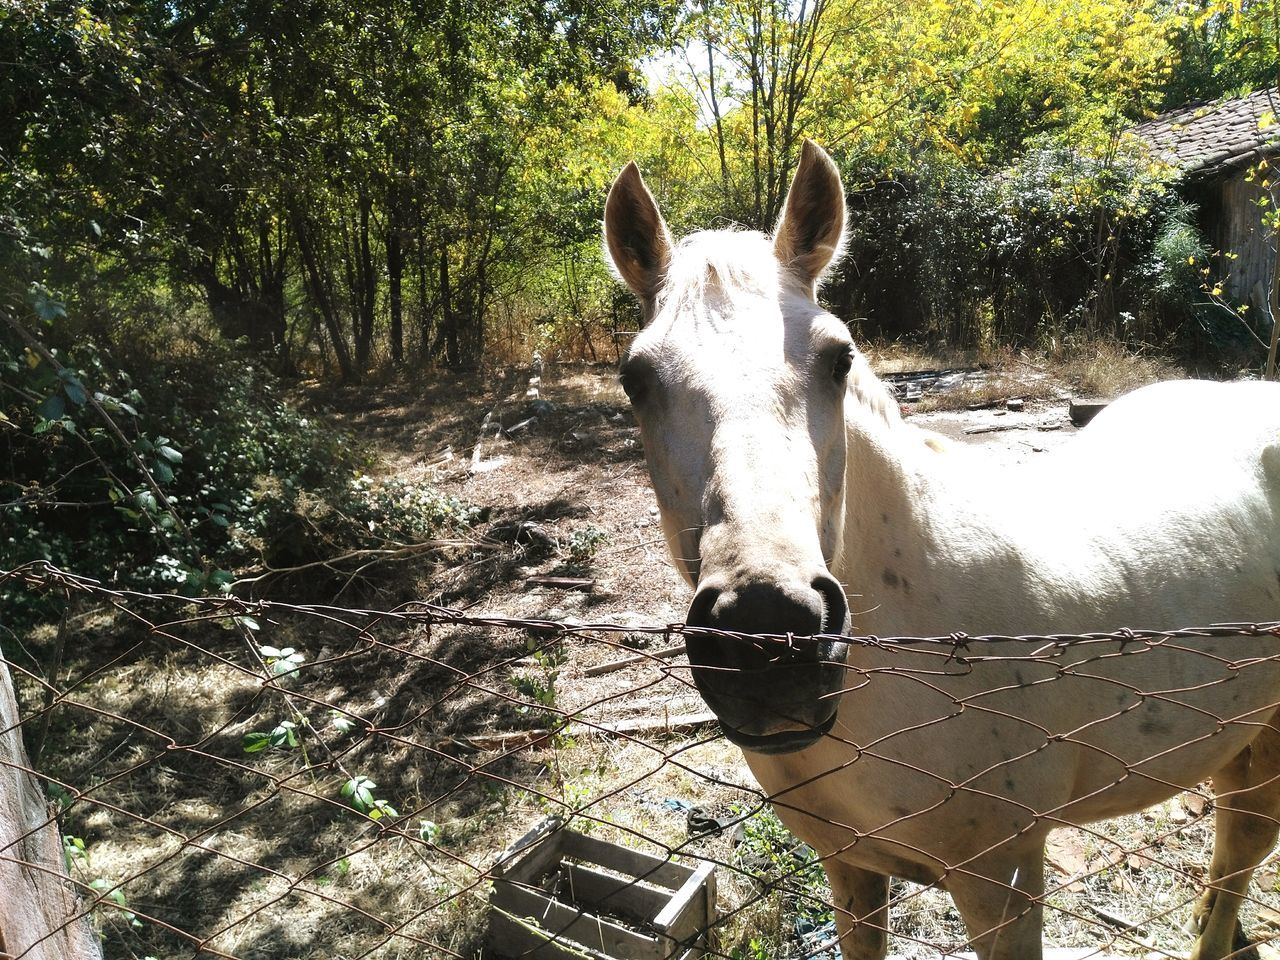 horse, domestic animals, one animal, animal themes, mammal, day, tree, no people, outdoors, standing, livestock, nature, portrait, close-up